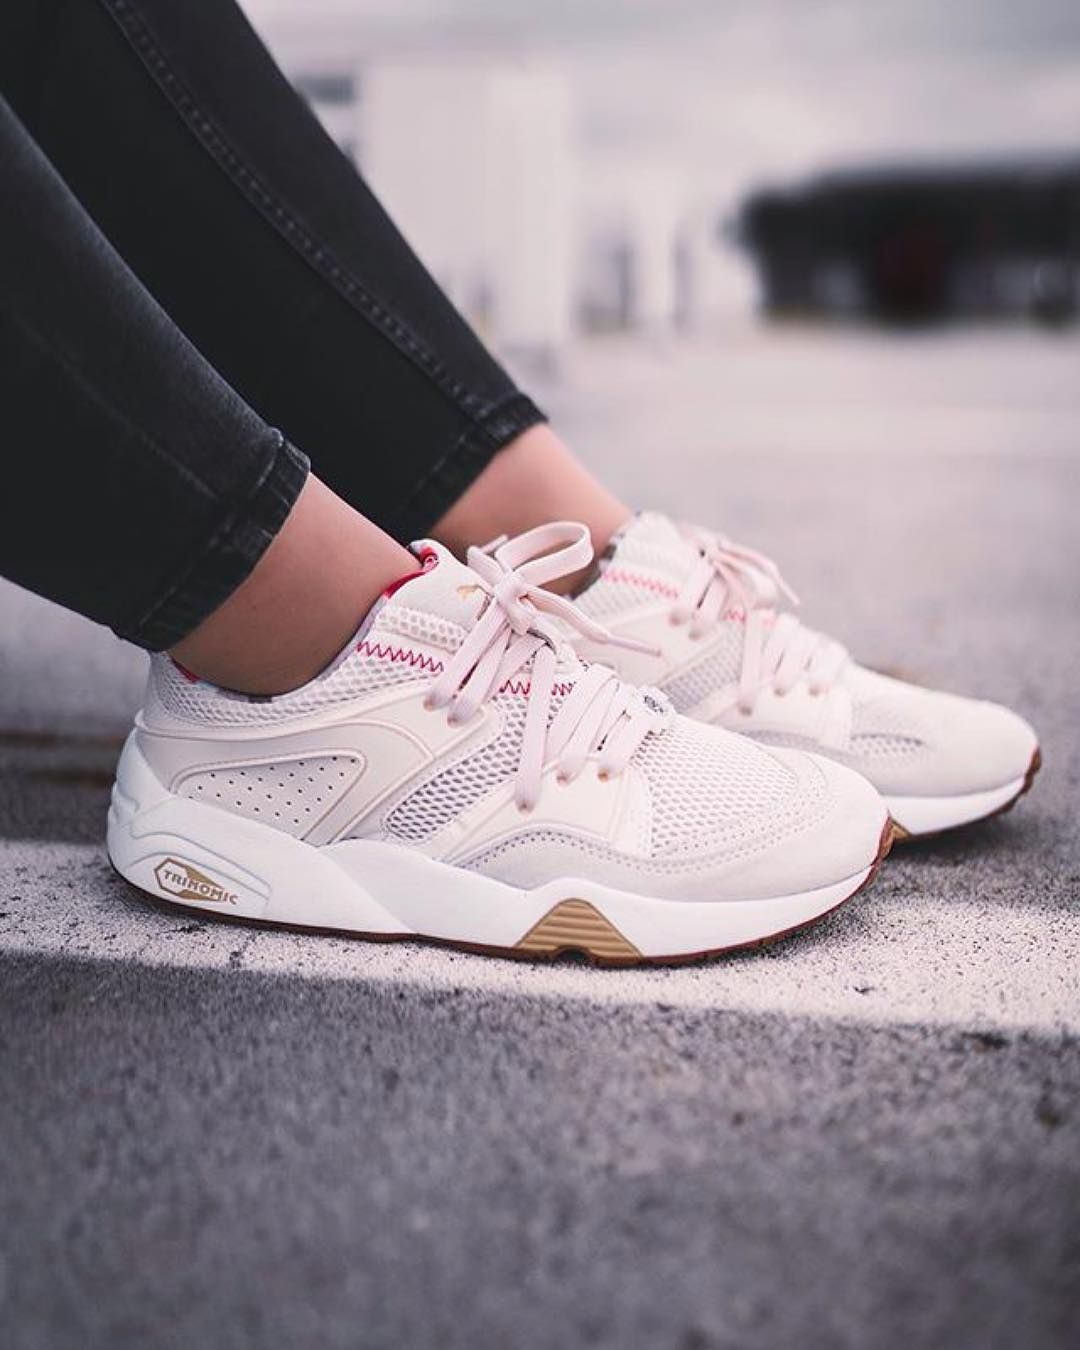 Sneakers femme - Puma Blaze Of Glory x Careaux (©objctve)   Sneakers ... cd9f0b332eb5